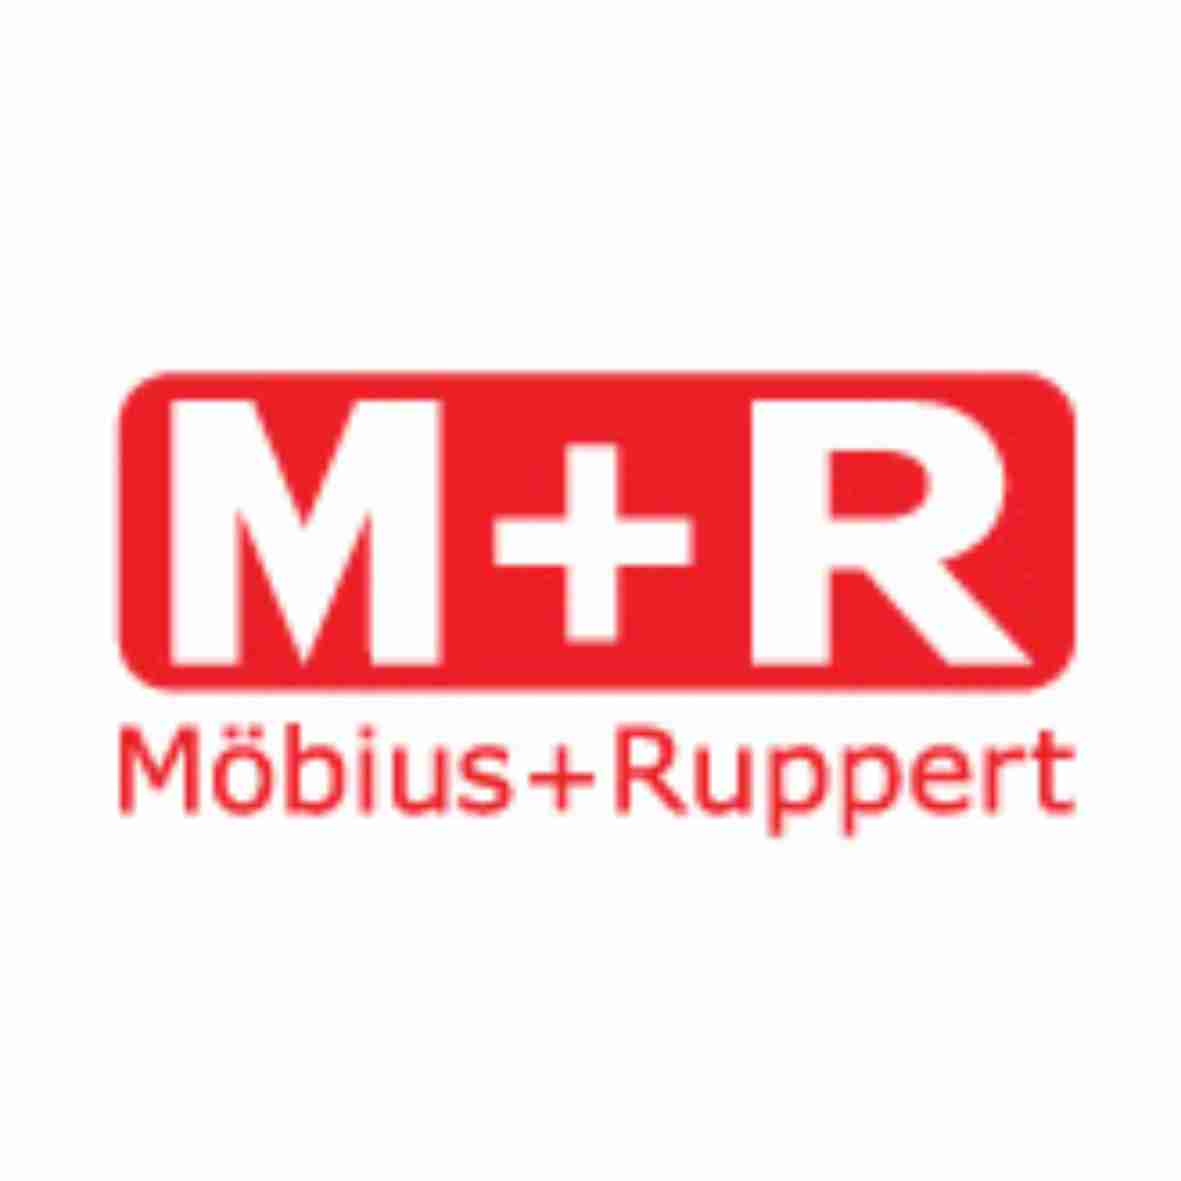 MOBIUS&RUPPERT